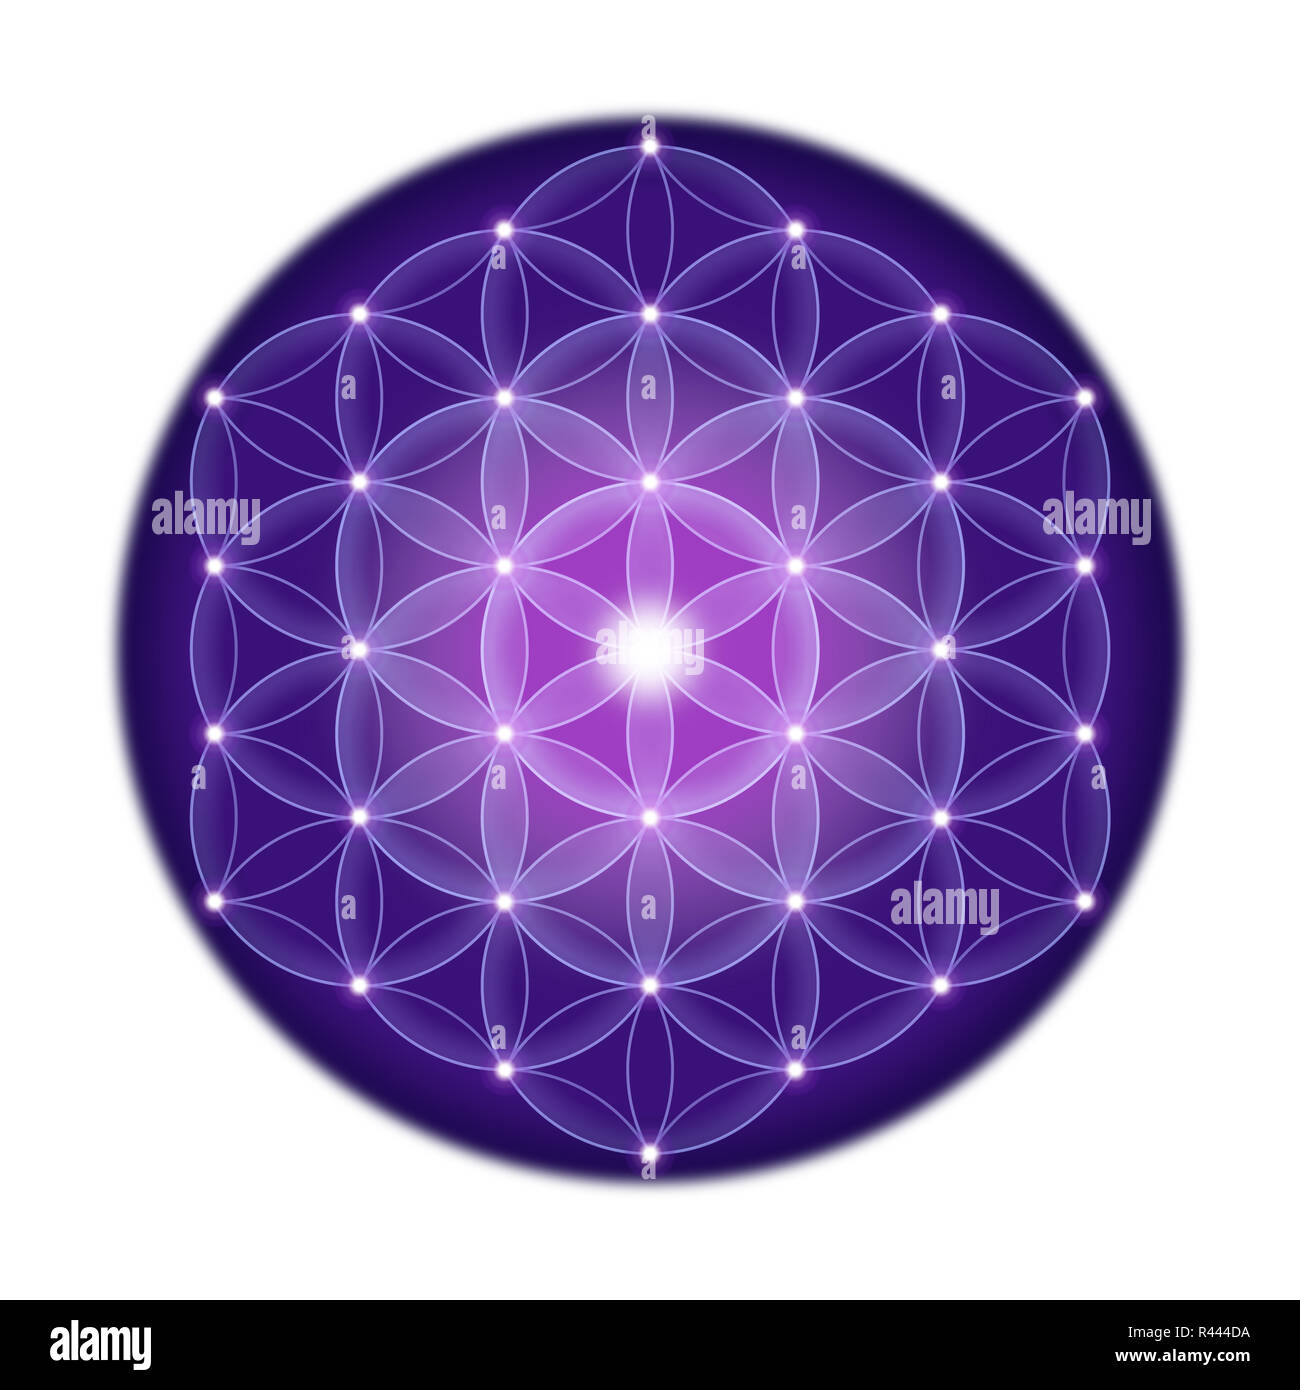 Bright Flower of Life With Stars on White Background - Stock Image